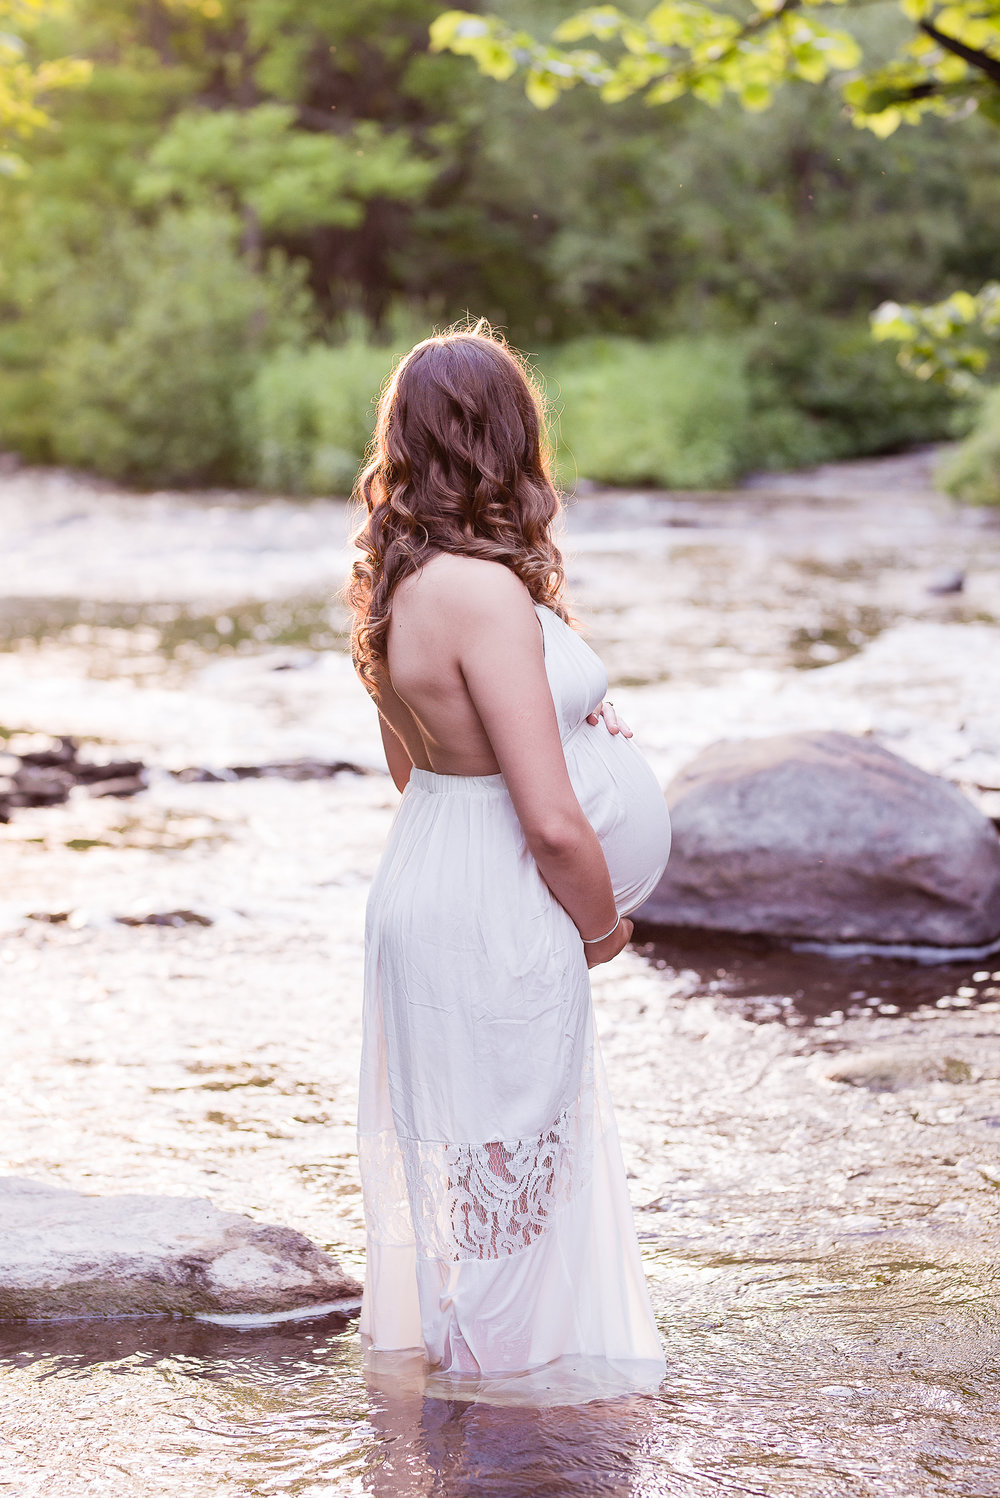 Maternity169NaomiLuciennePhotography062018-2-Edit.jpg